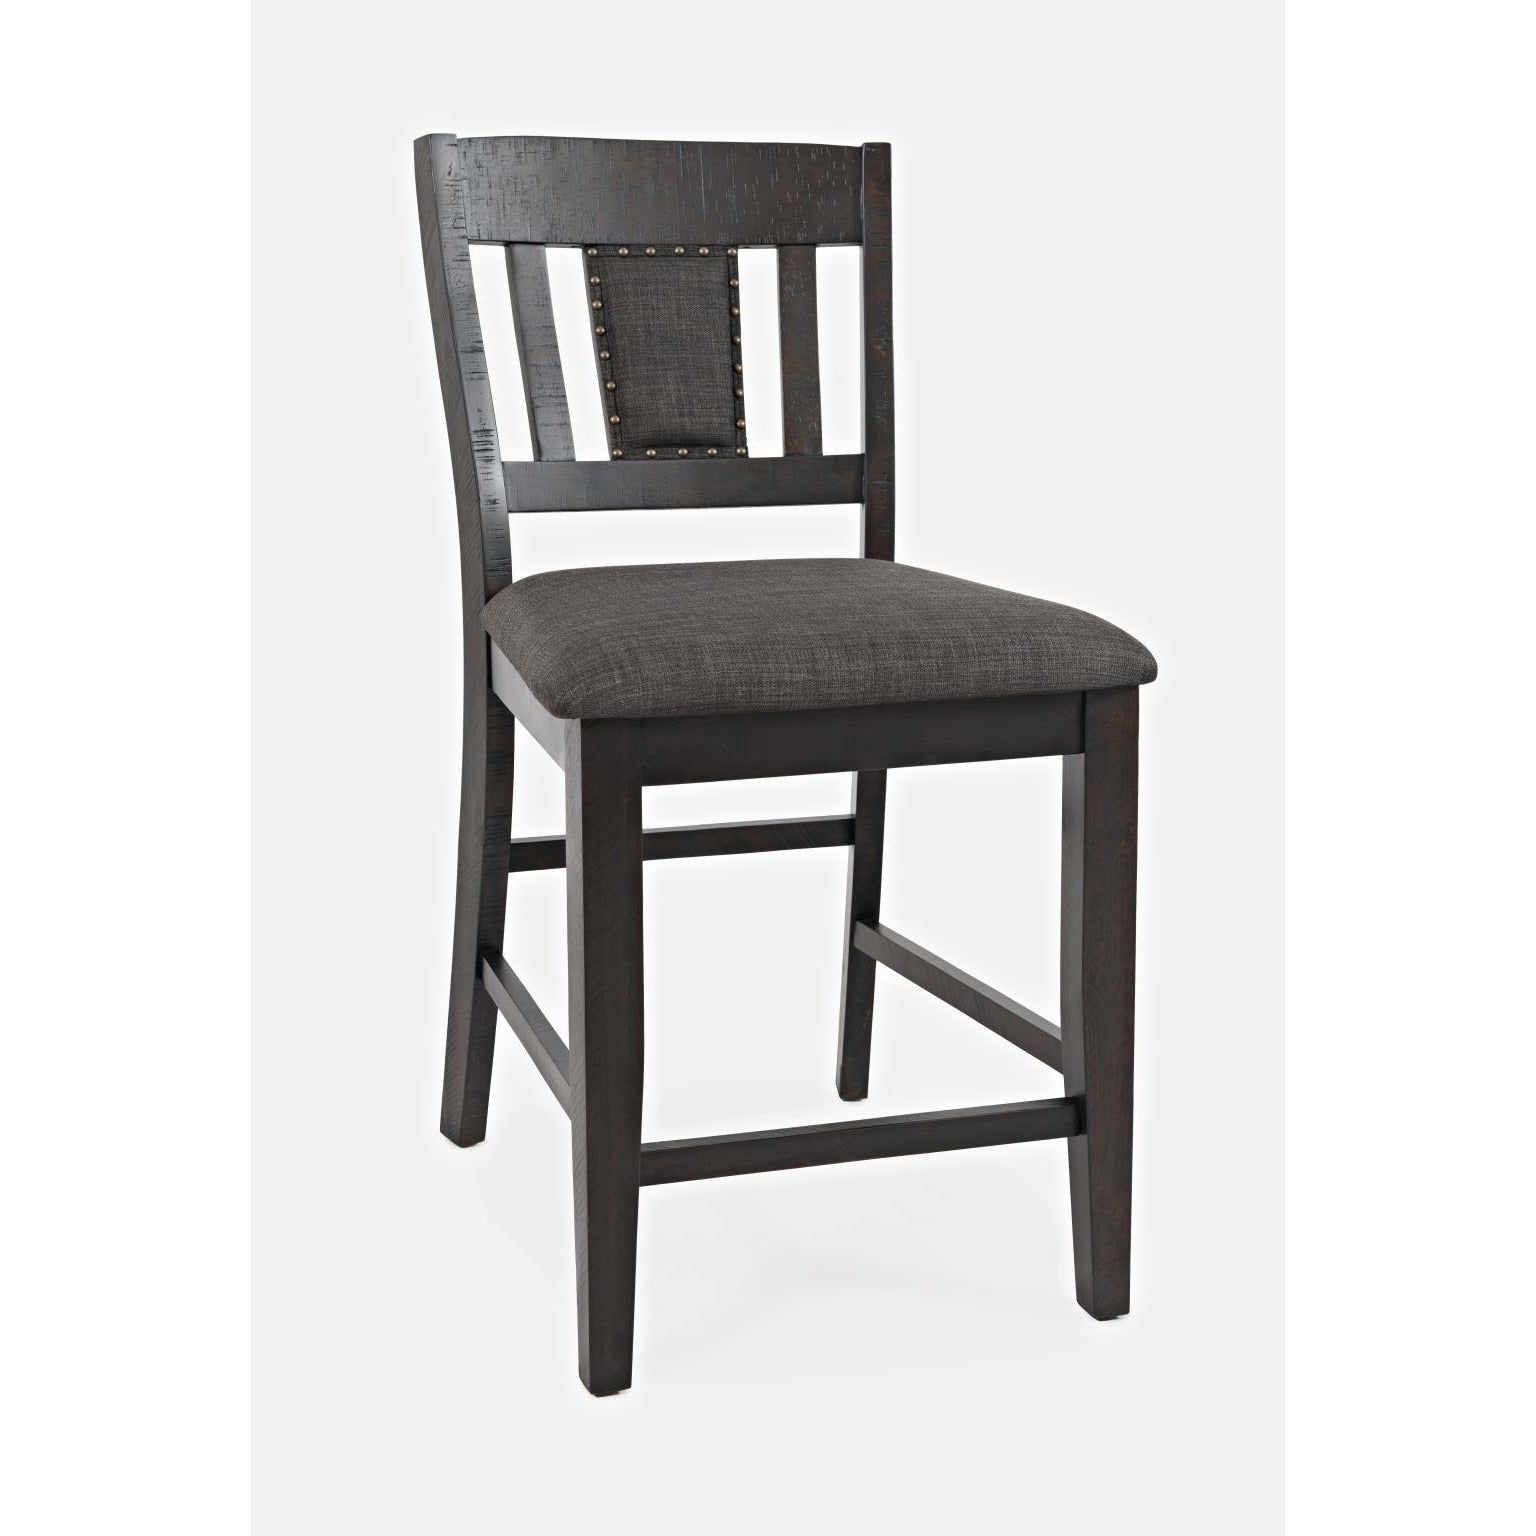 American Rustics Counter Stool